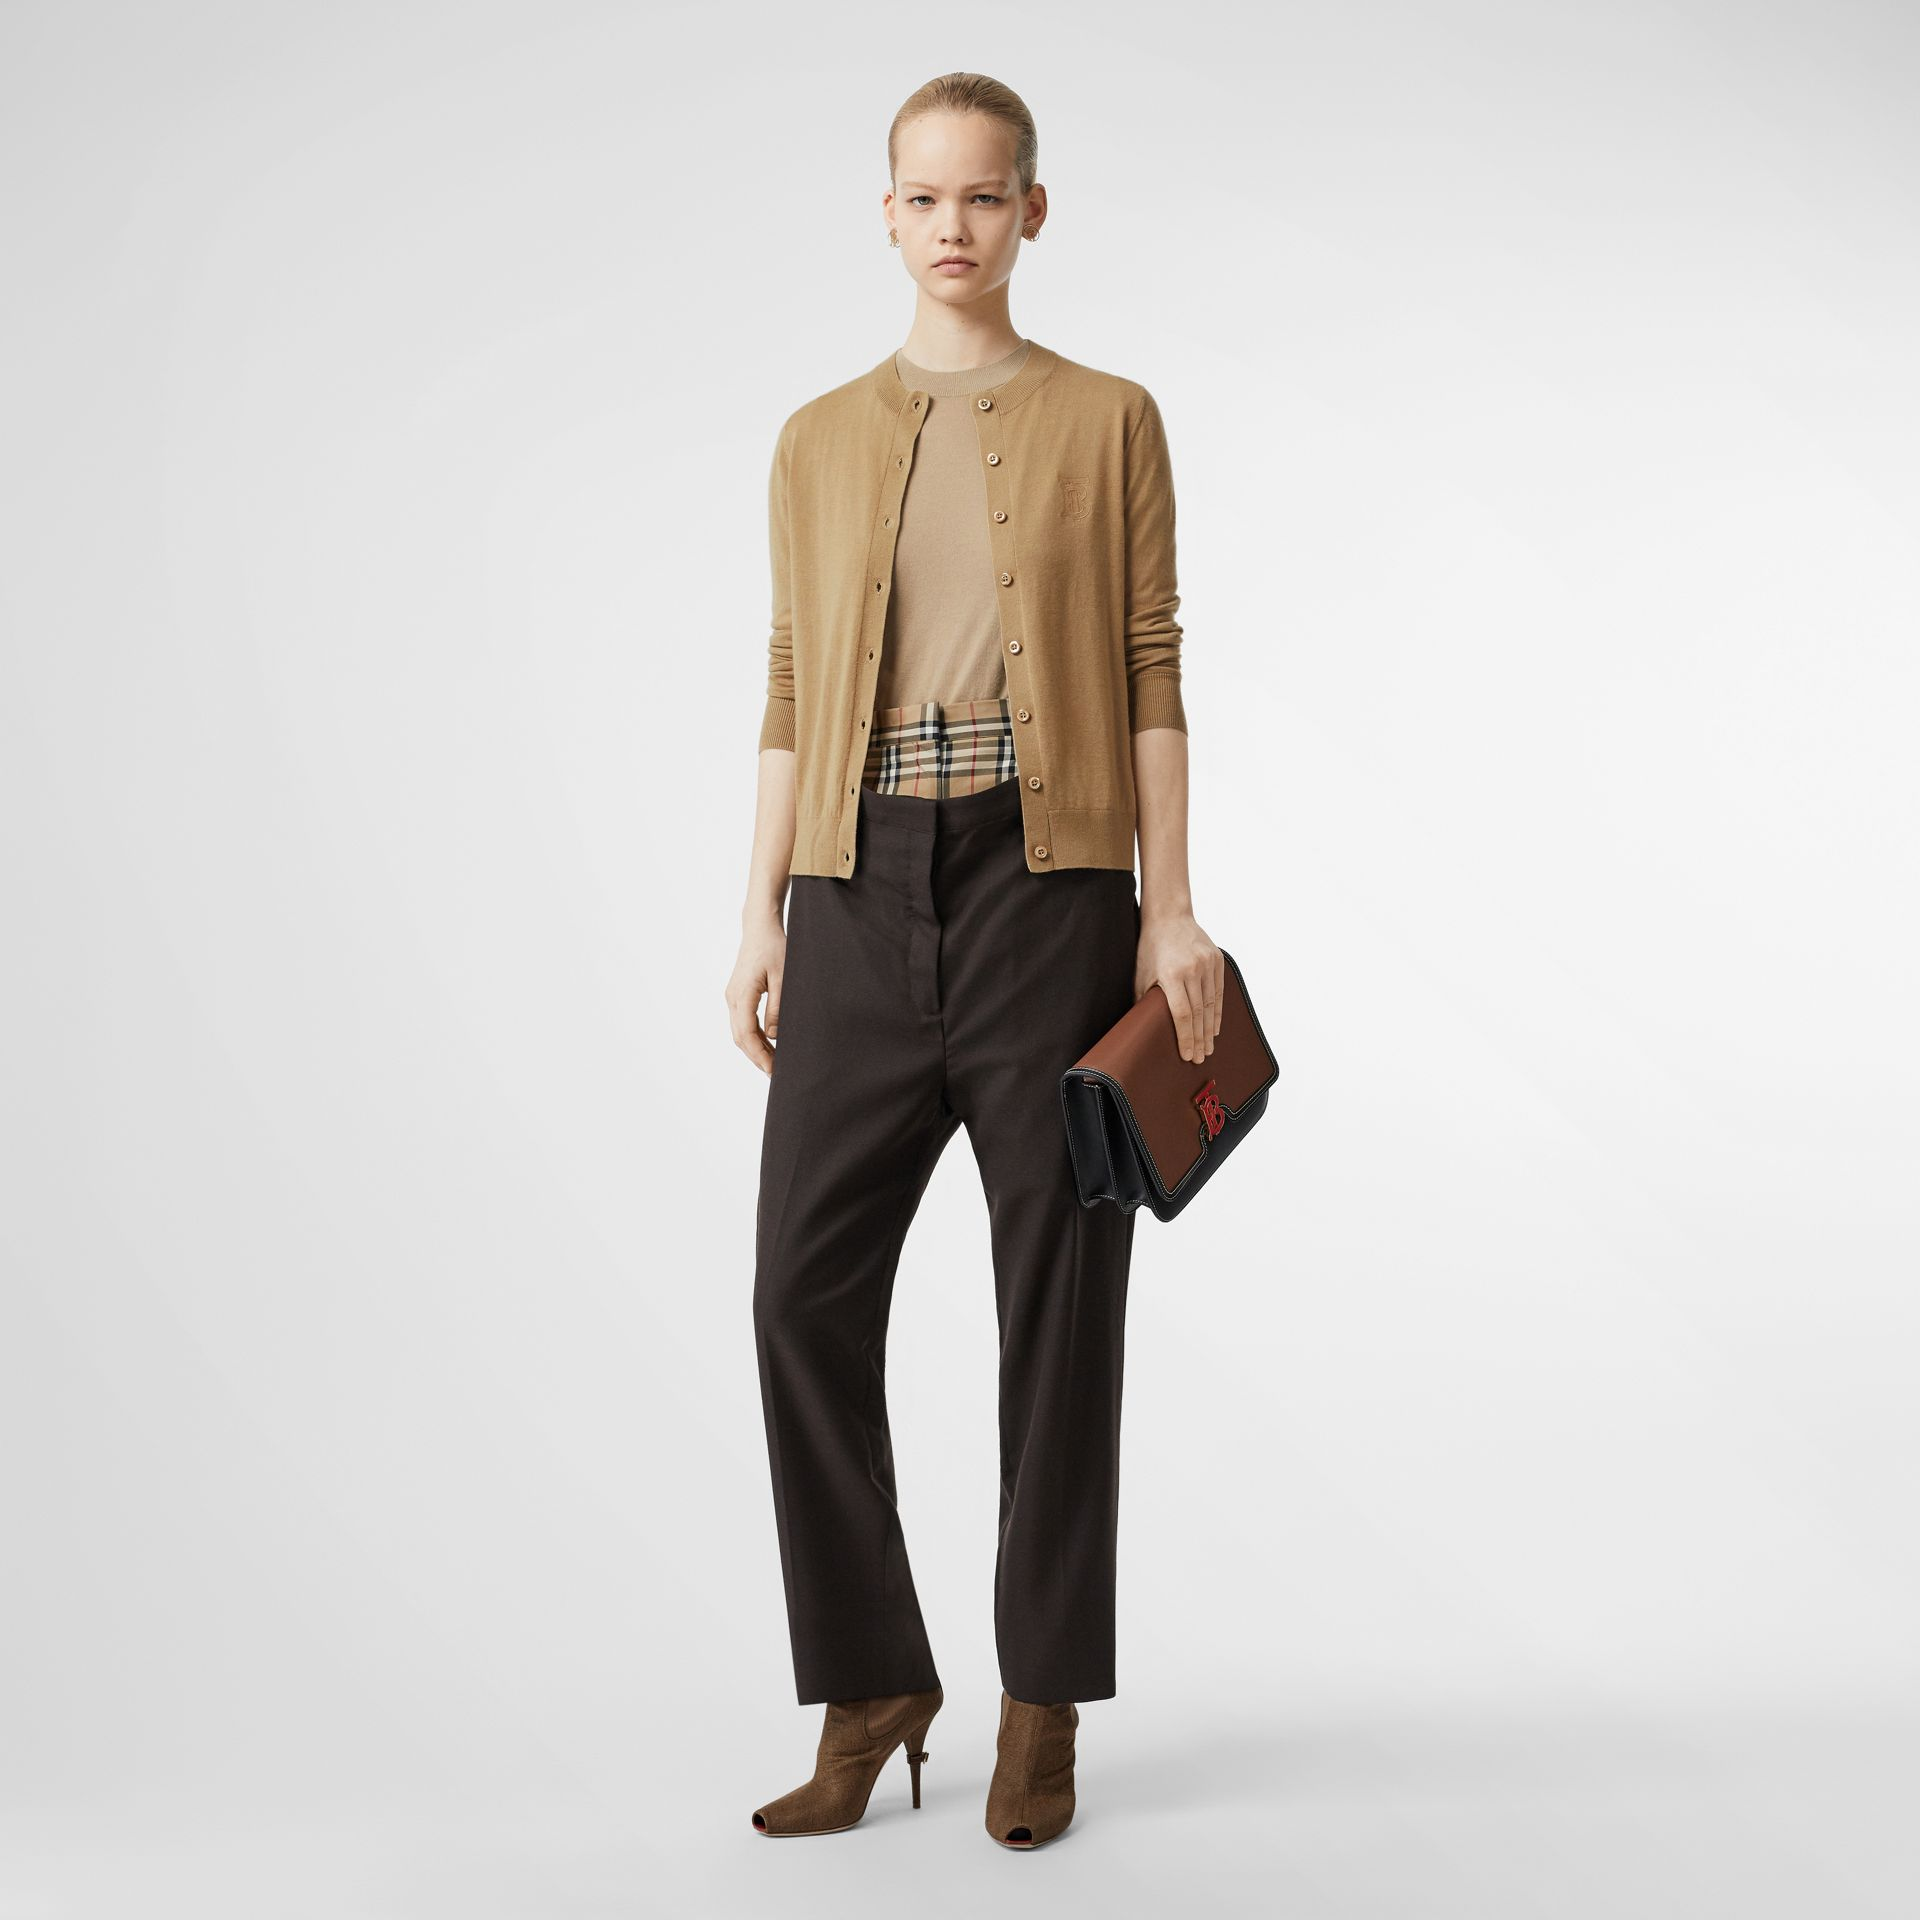 Monogram Motif Cashmere Cardigan in Camel - Women | Burberry - gallery image 0